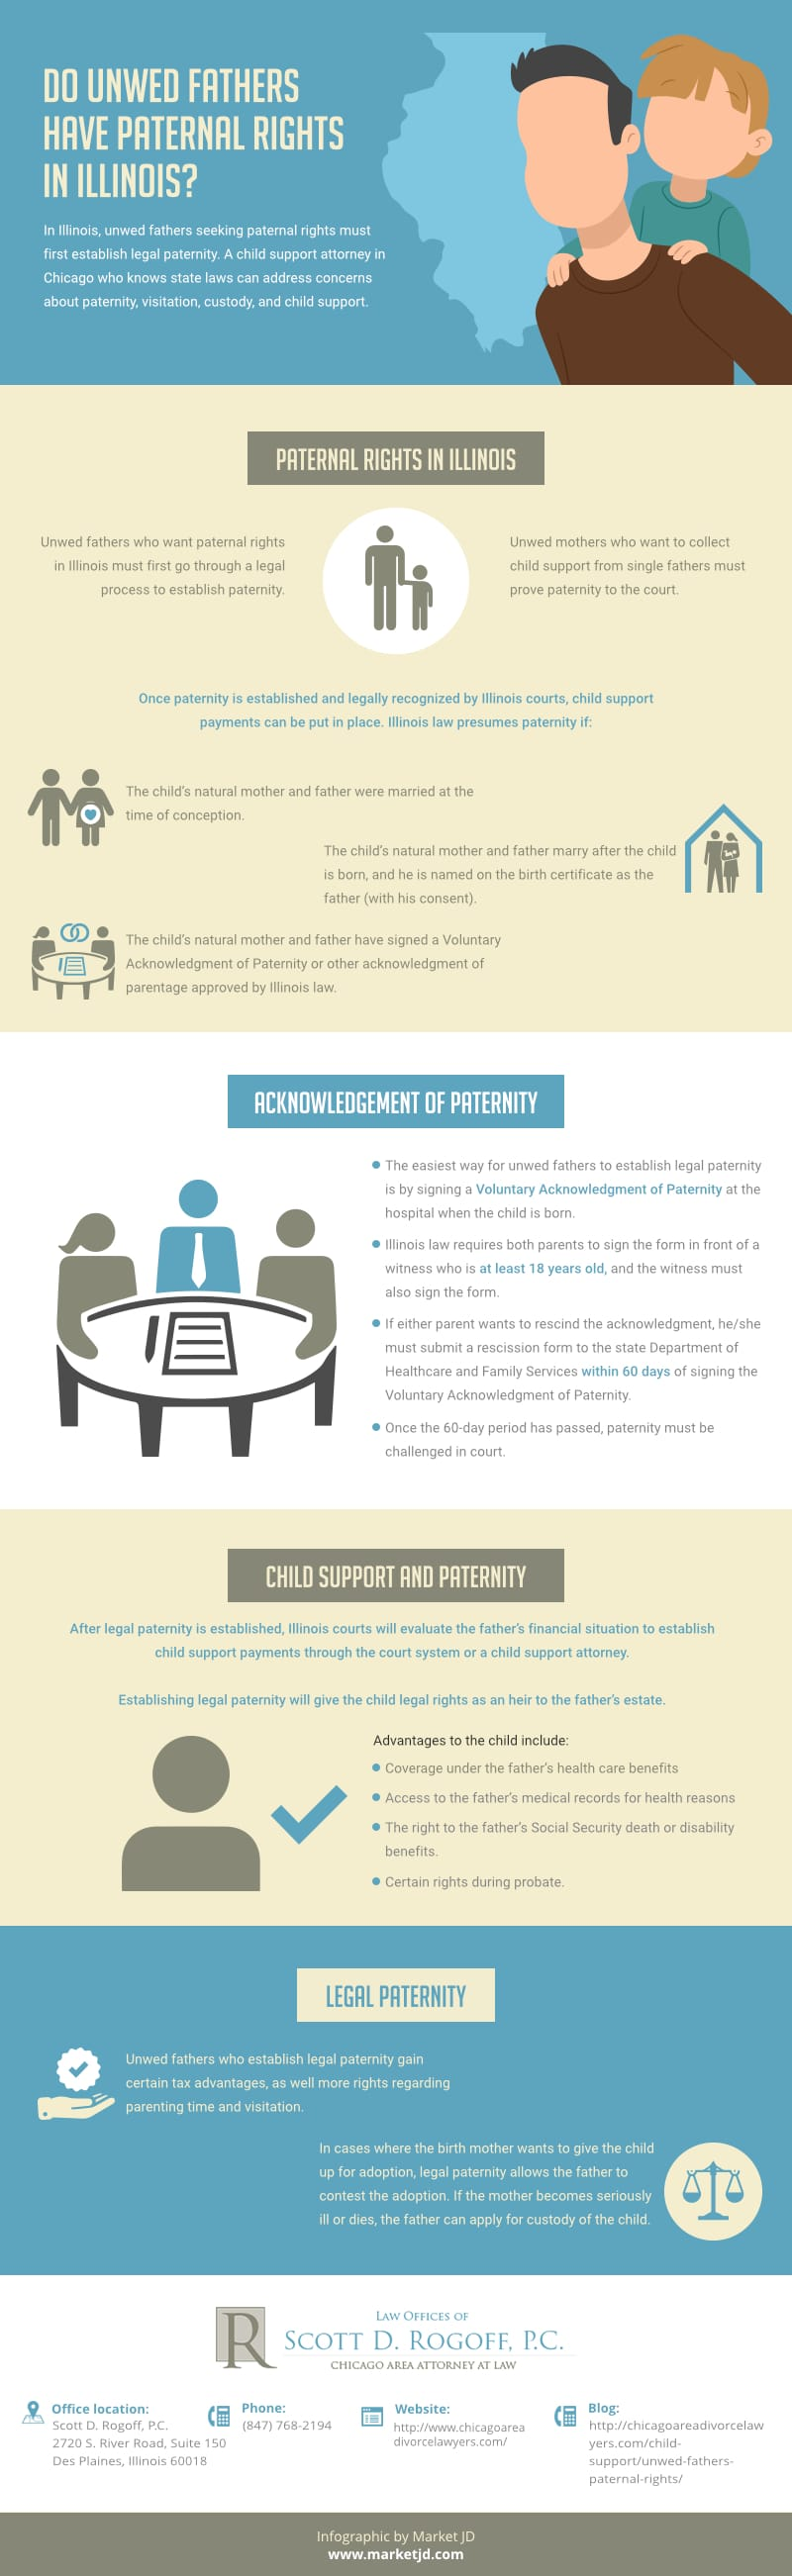 infographic_Unwed Fathers Paternal Rights in Illinois